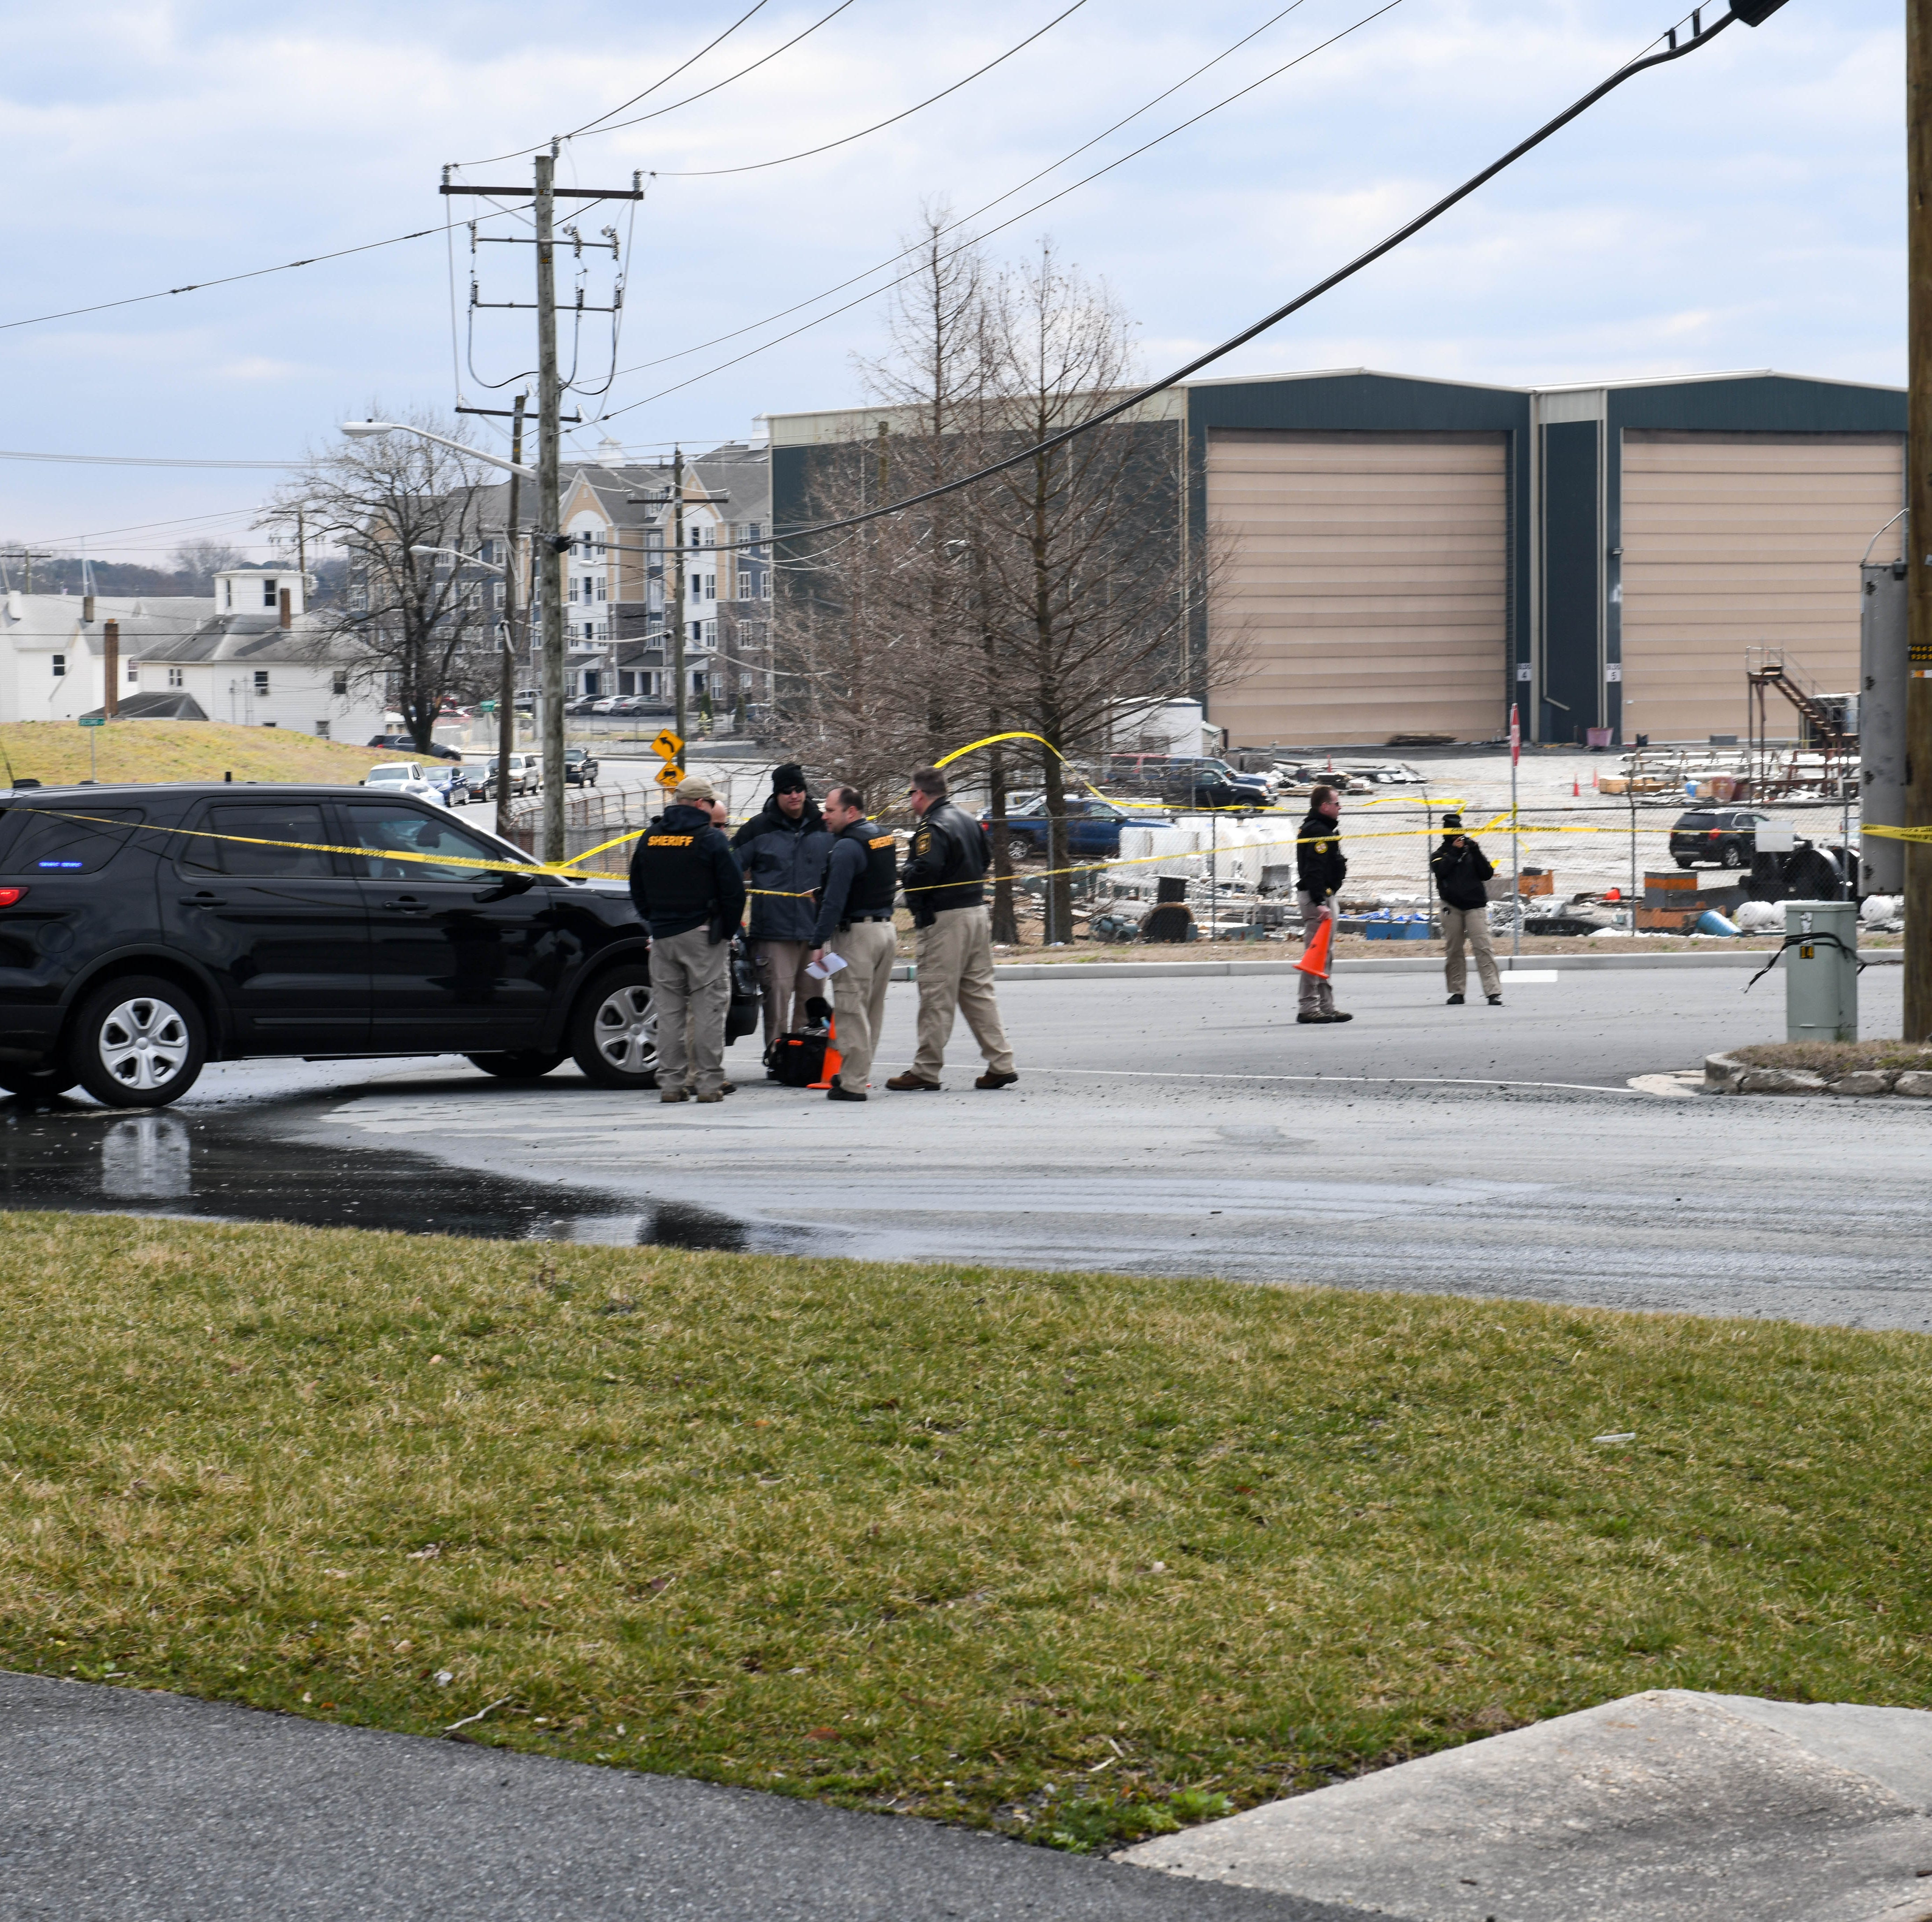 Following car chase, sheriff's office investigation closes roads around Salisbury Marina